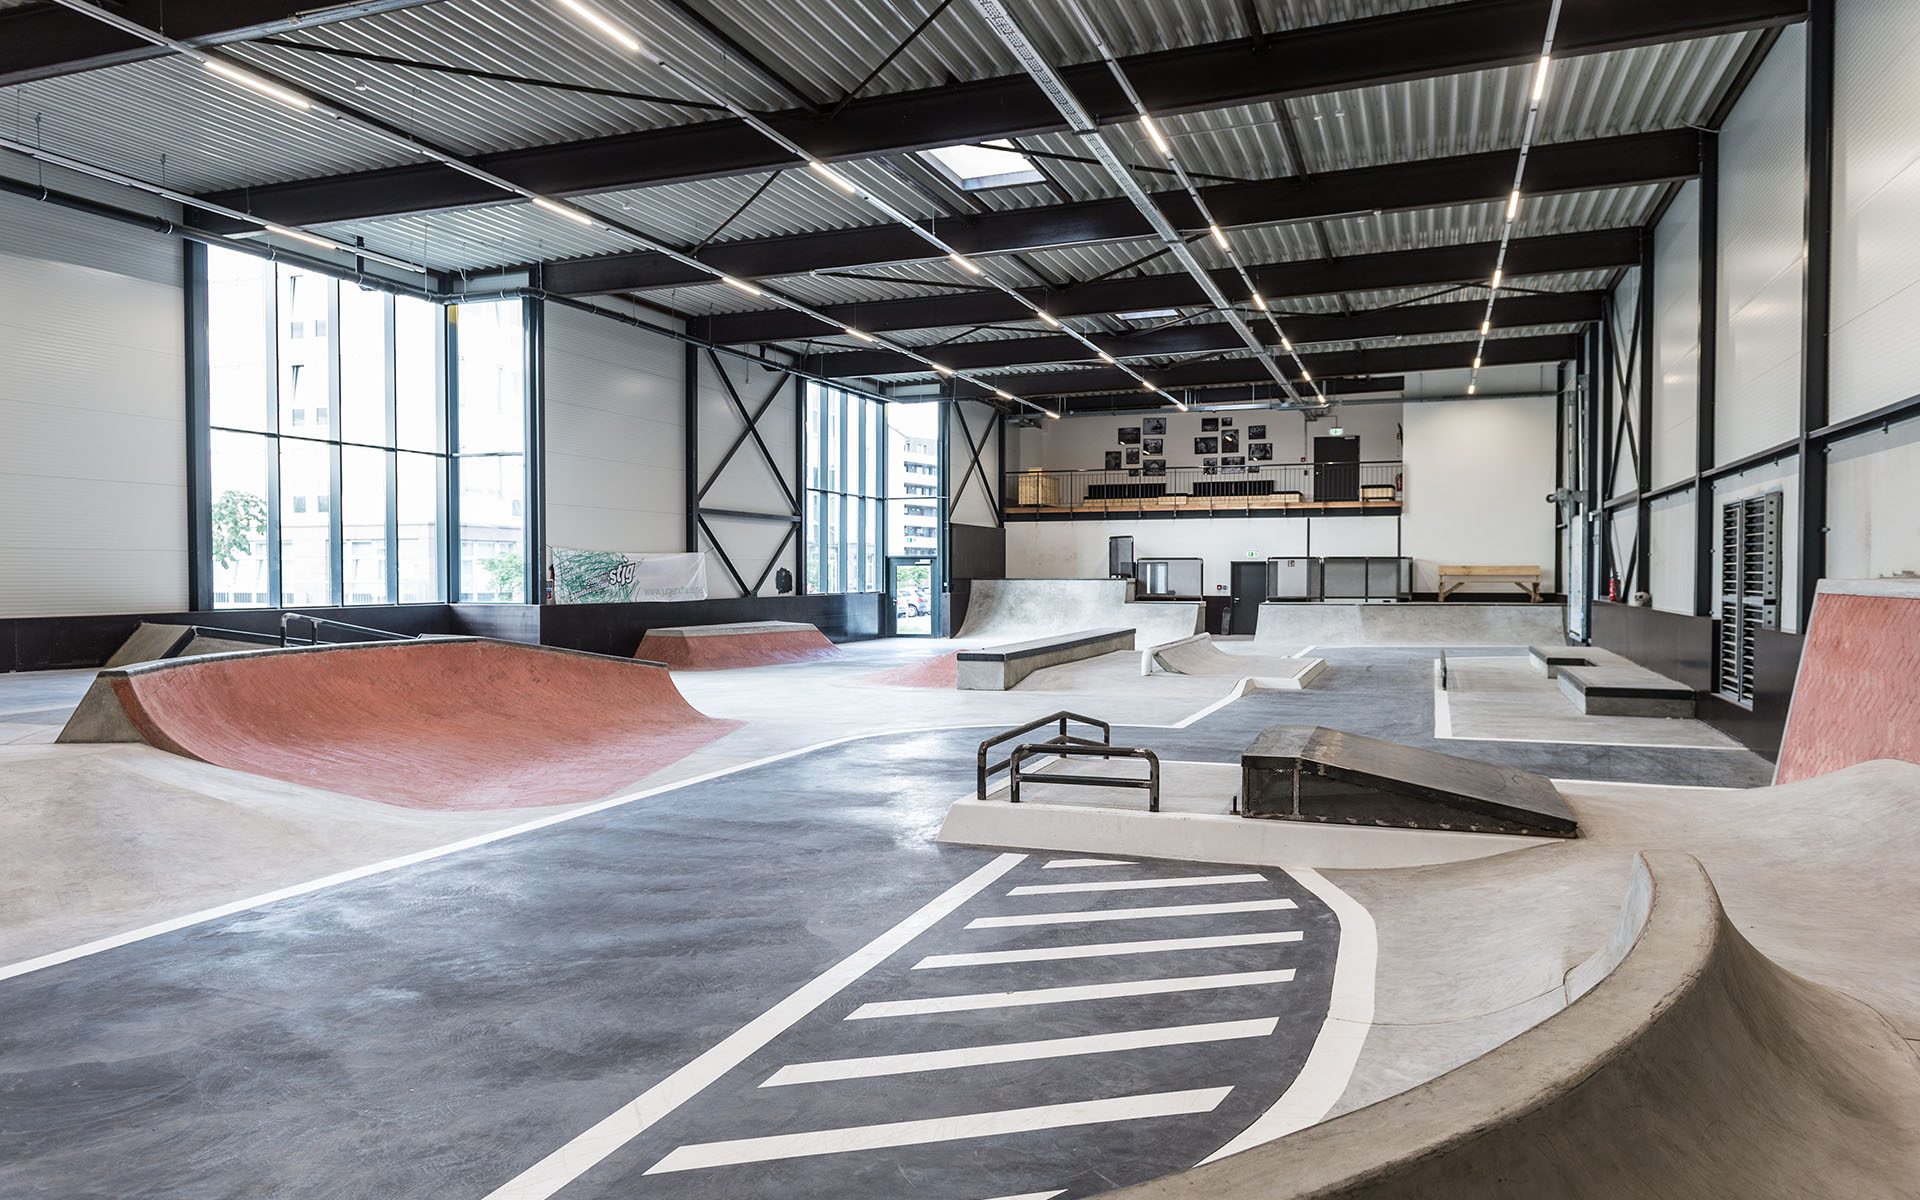 750 qm Indoor SkateplazaWelcome To STUTTPARK